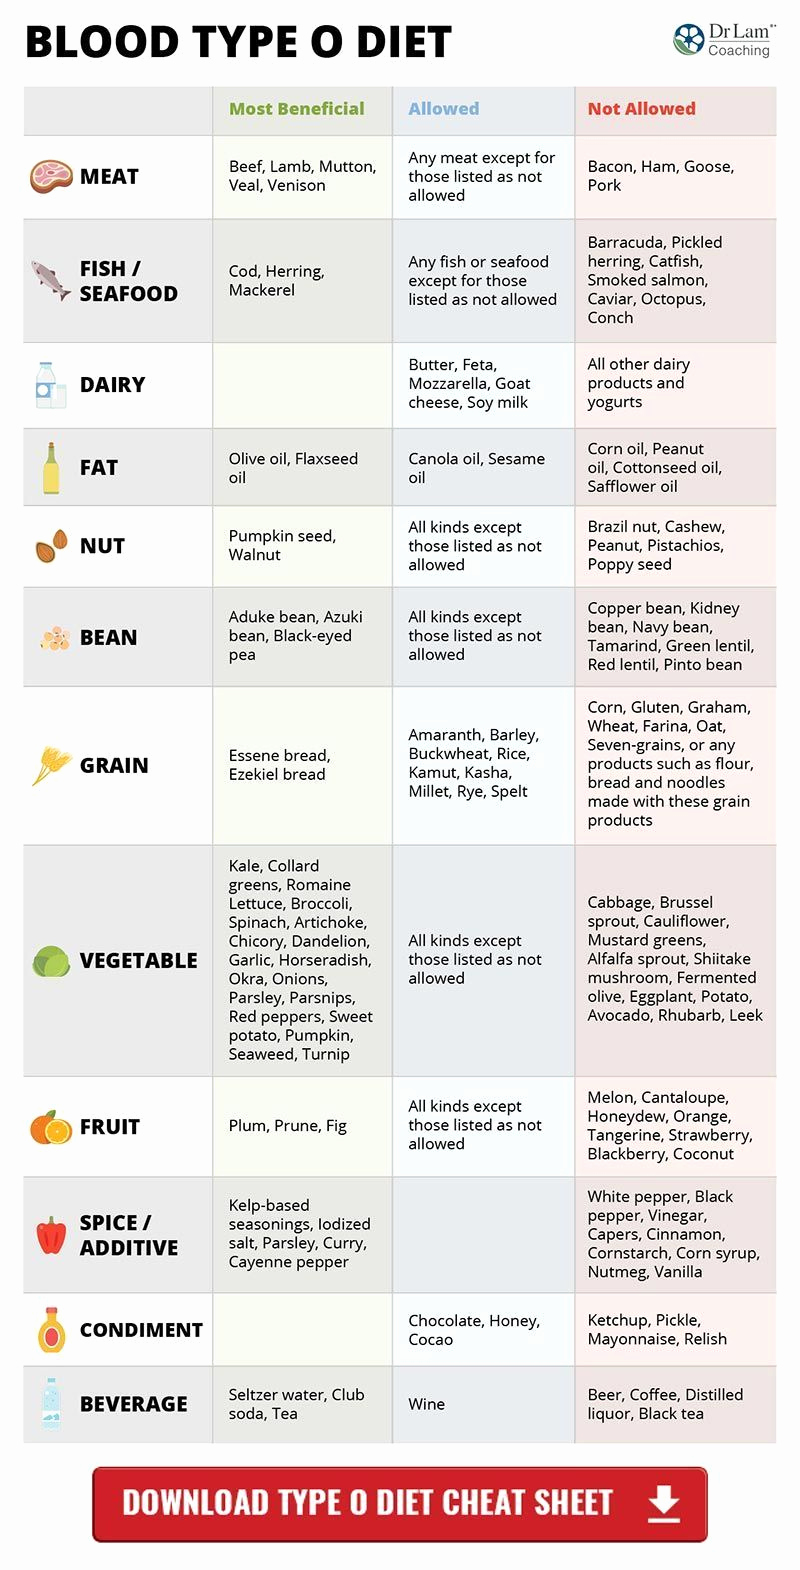 Blood Types Food Chart Inspirational the Blood Type Diet Chart that Has Everything You Need to